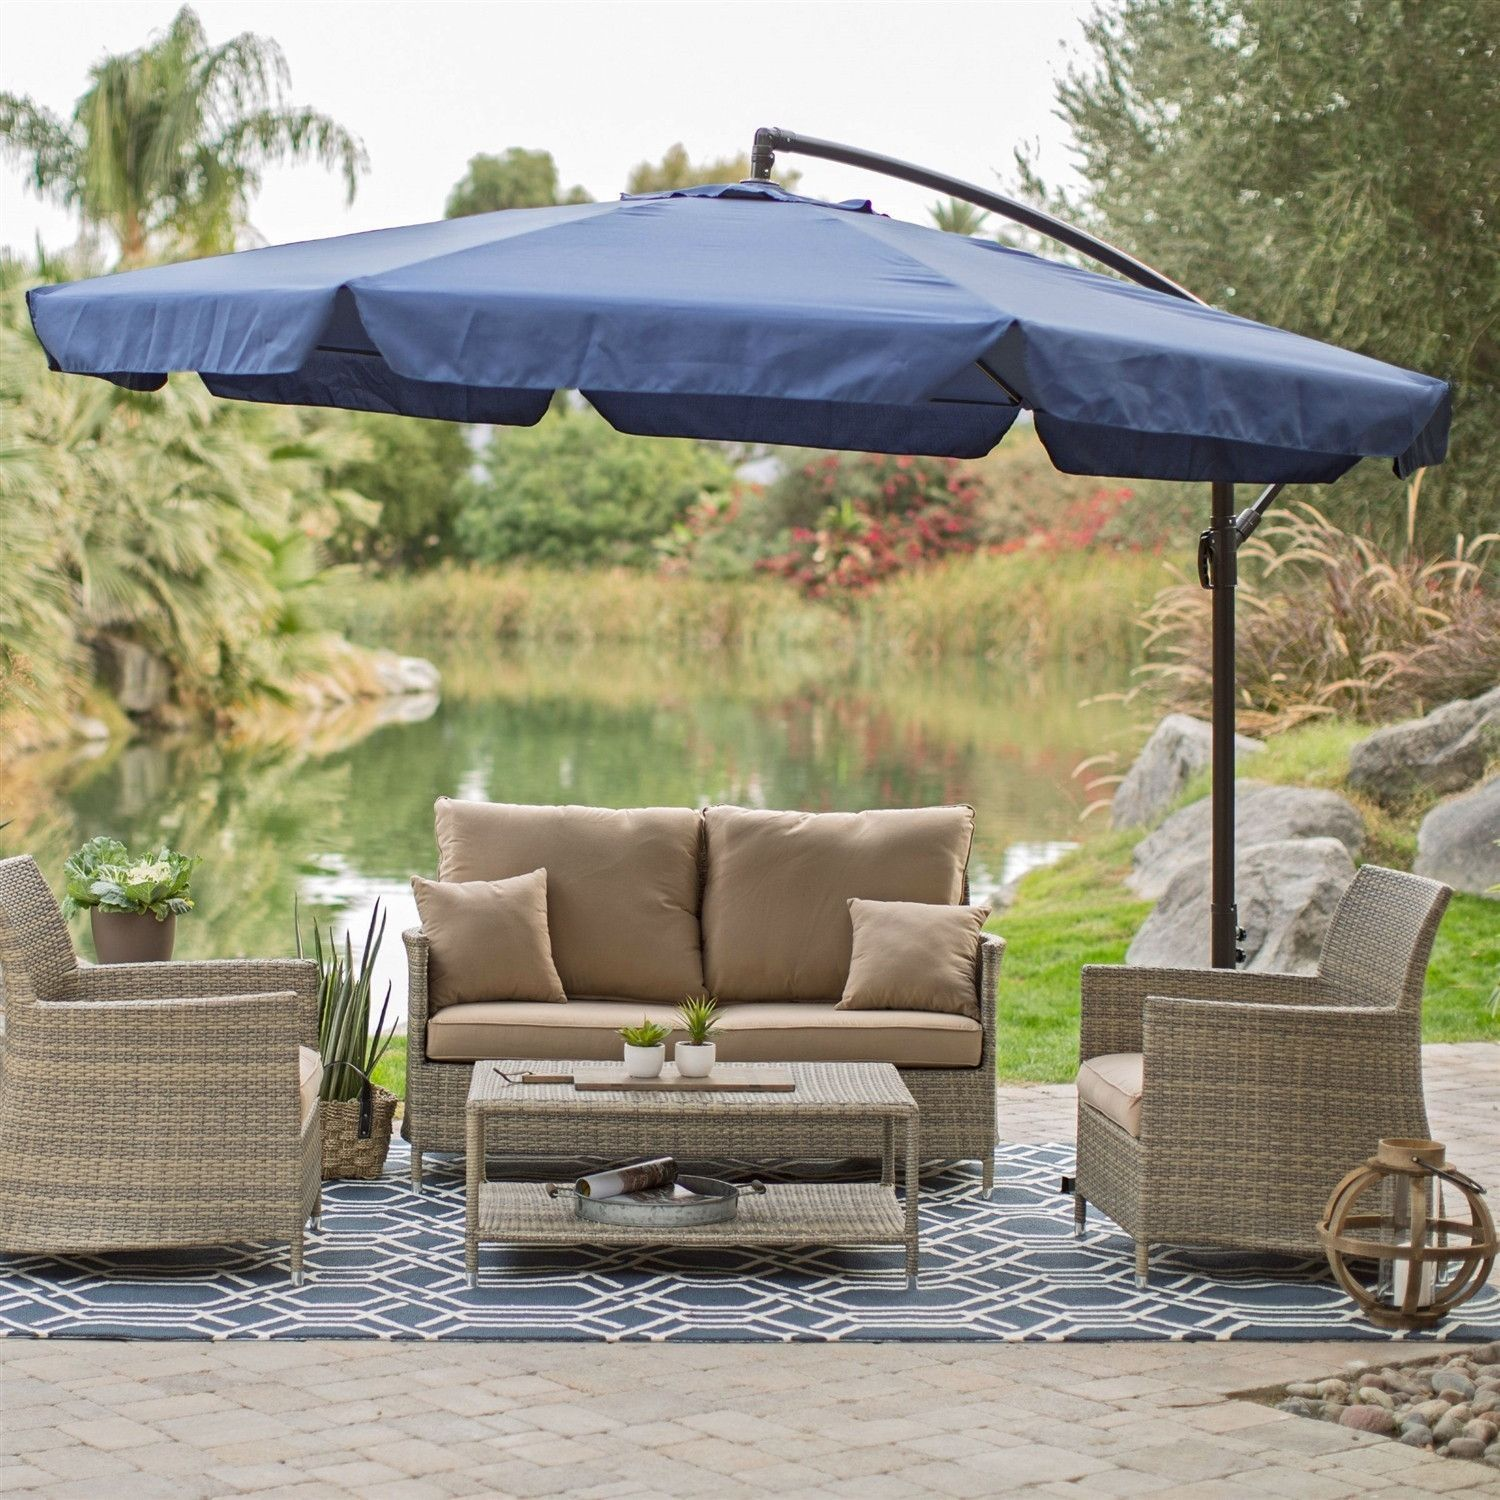 11 Ft Offset Patio Umbrella In Blue With Base And Detachable Mosquito  Netting